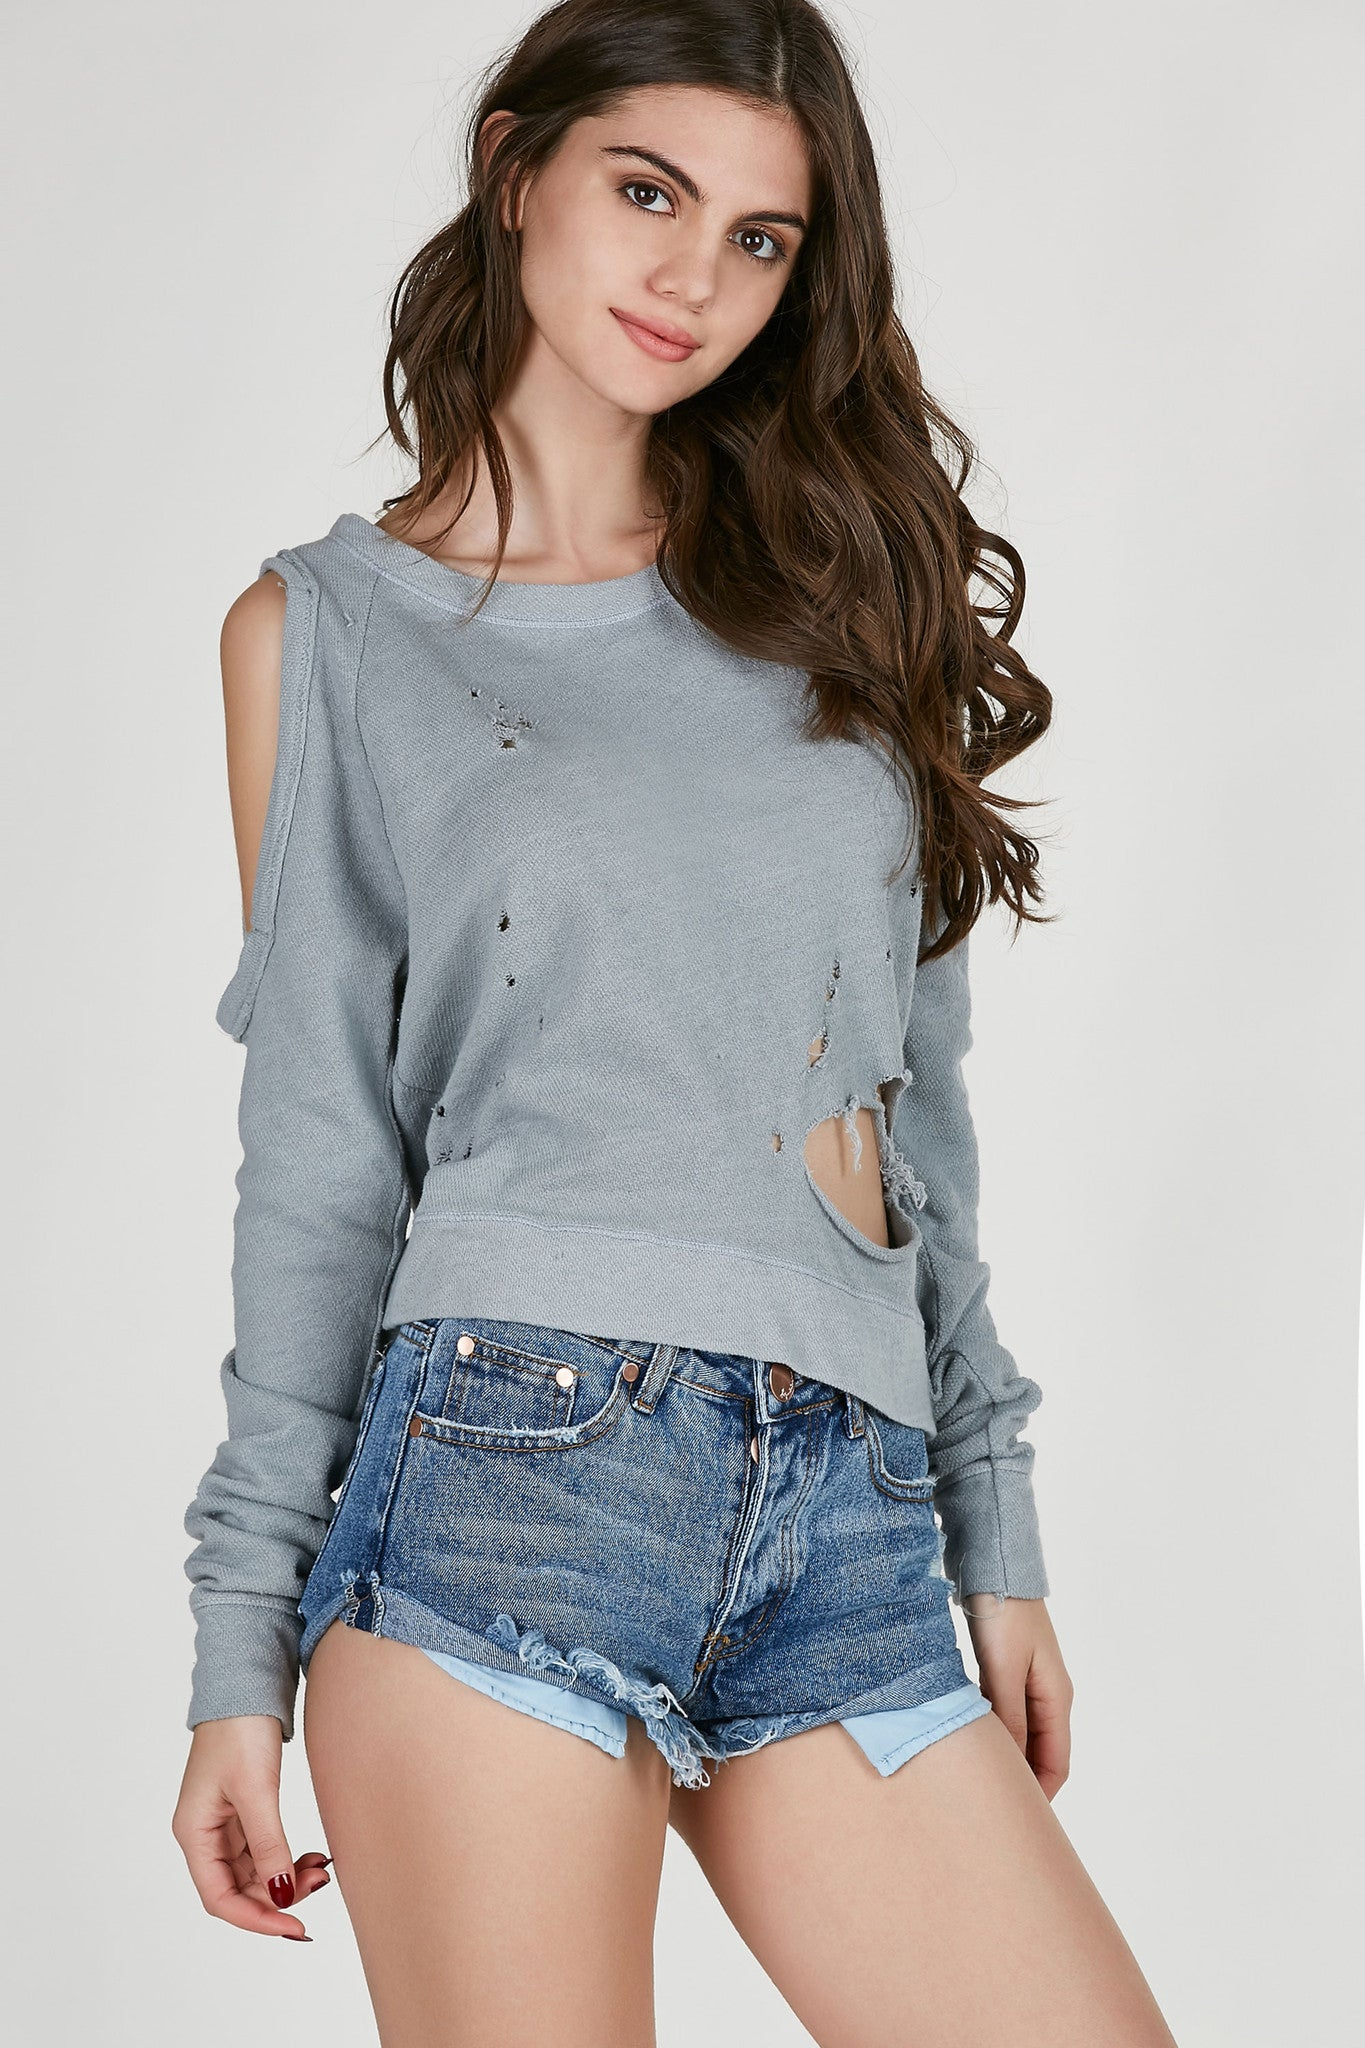 Long sleeve textured sweater with bold cold shoulder cut outs. Distressed throughout the front with relaxed fit.